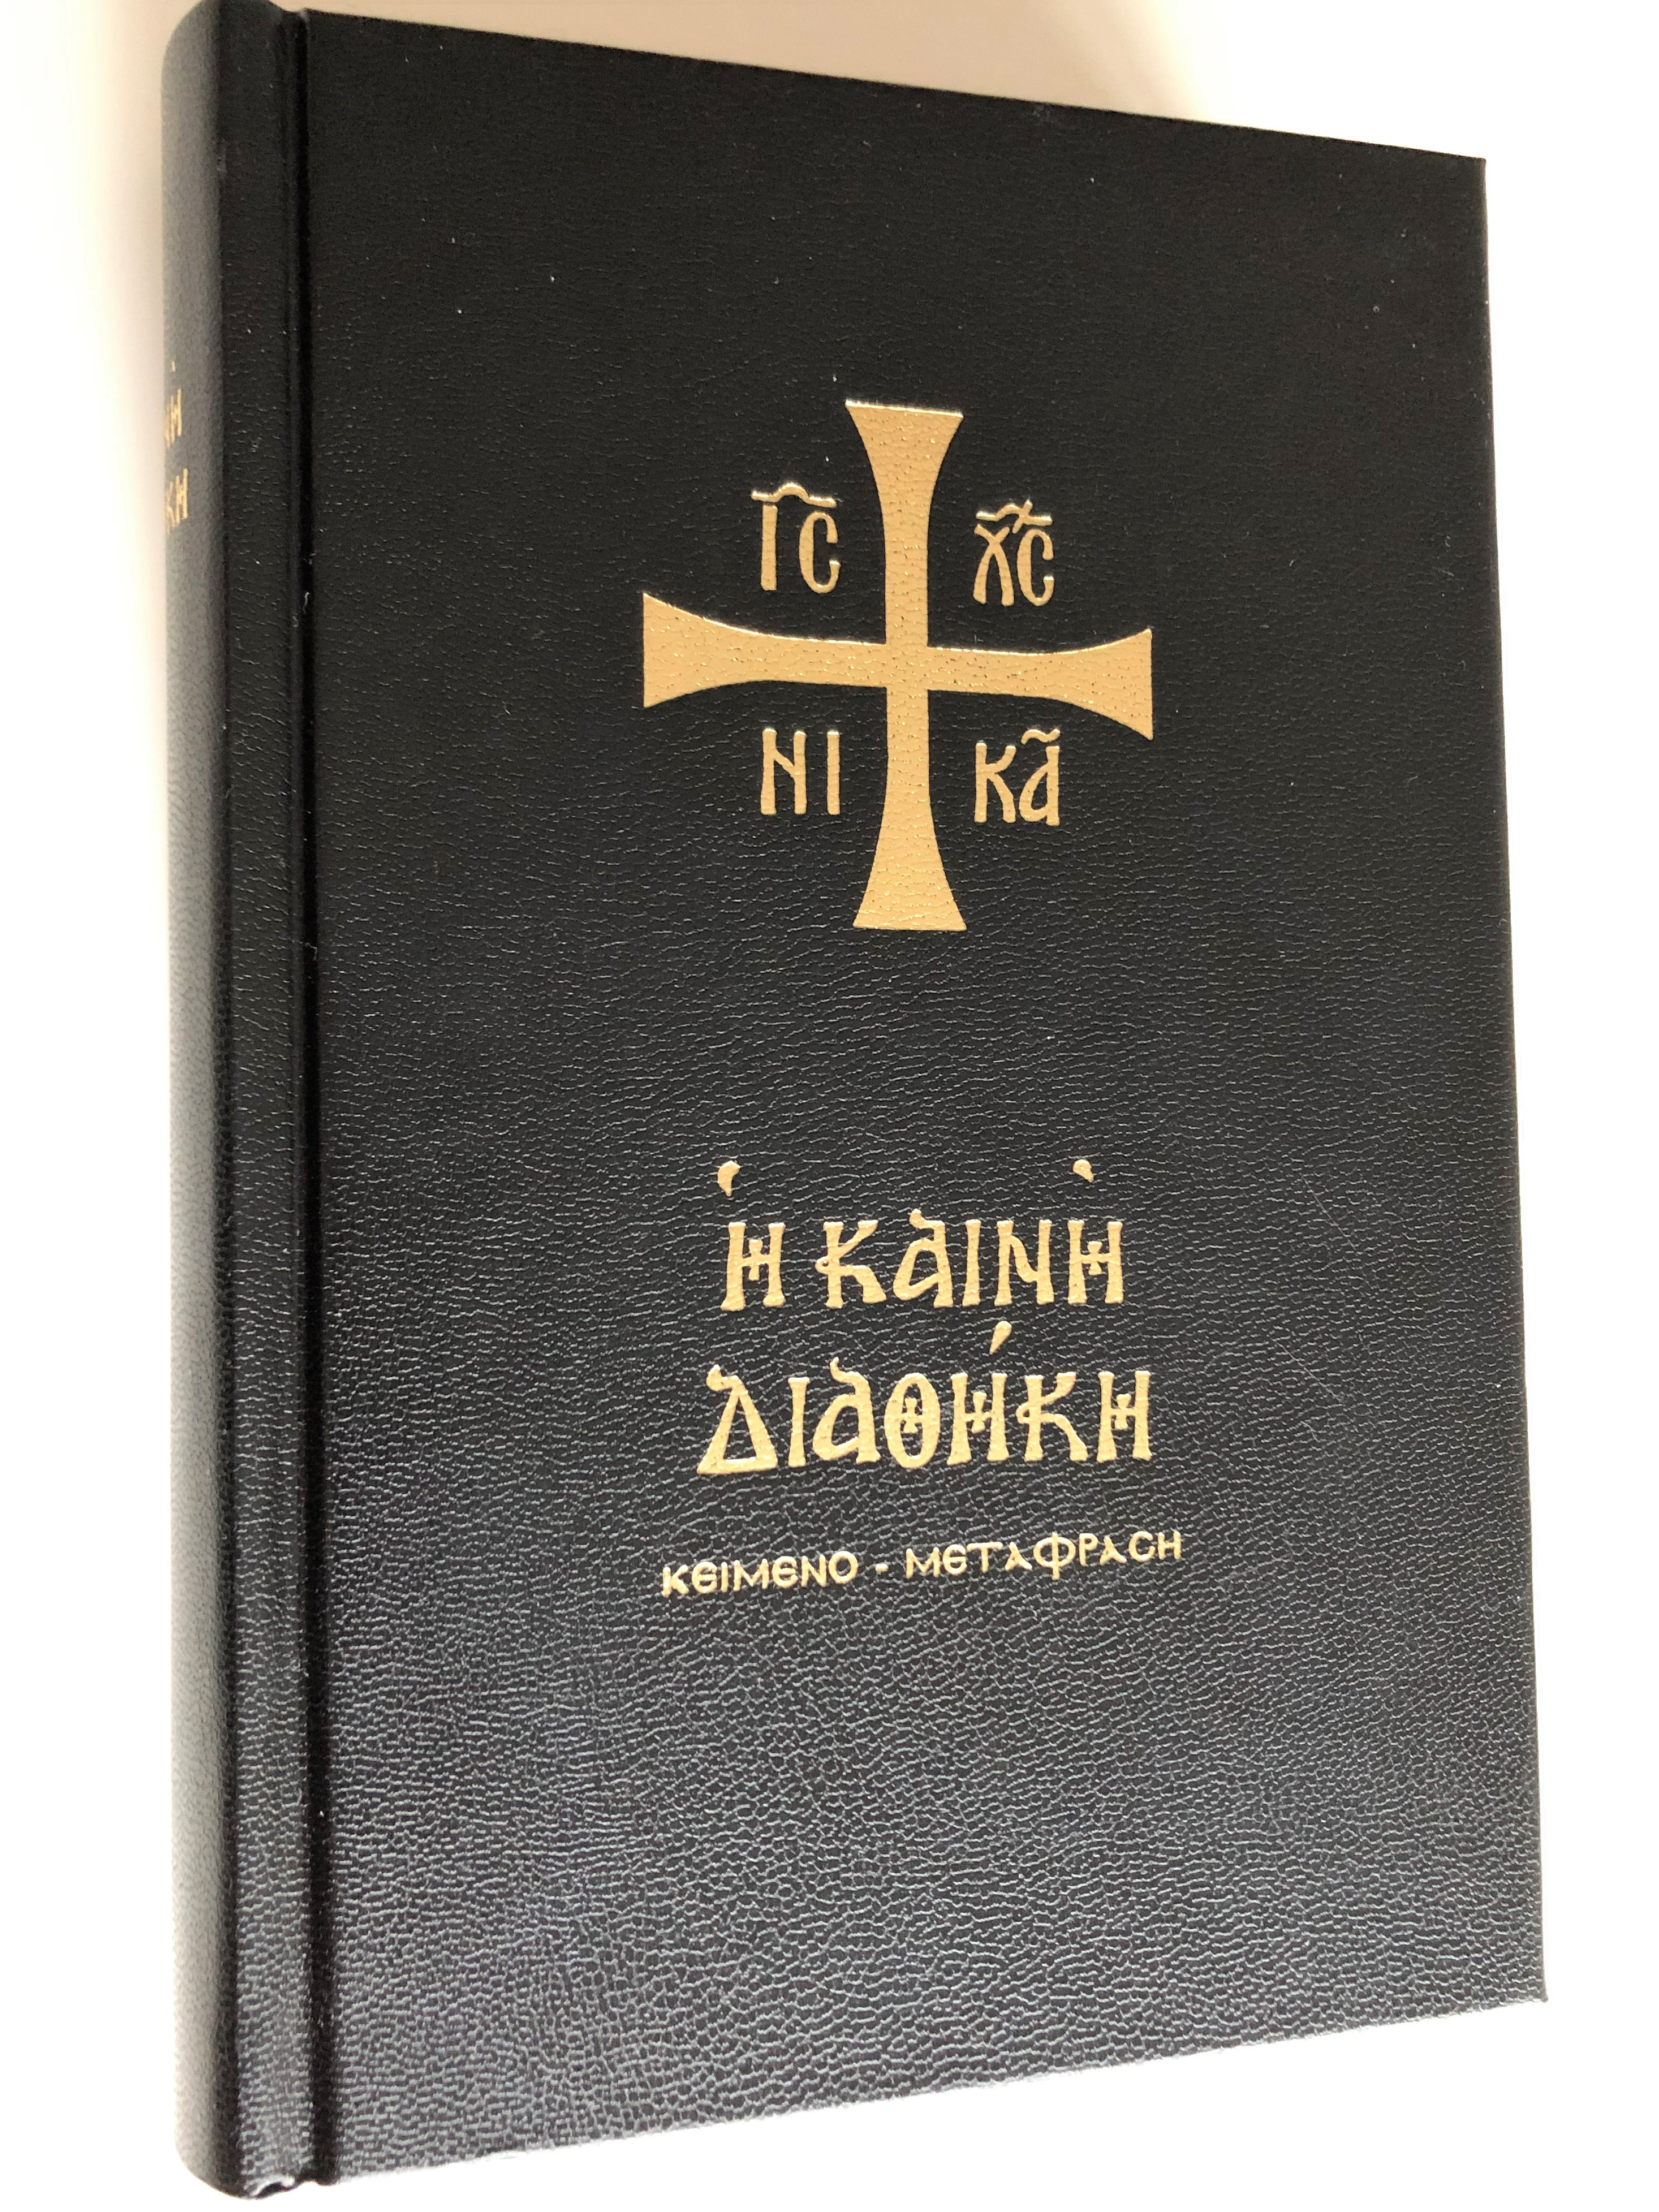 -the-new-testament-in-greek-language-koine-and-modern-greek-parallel-small-1-.jpg